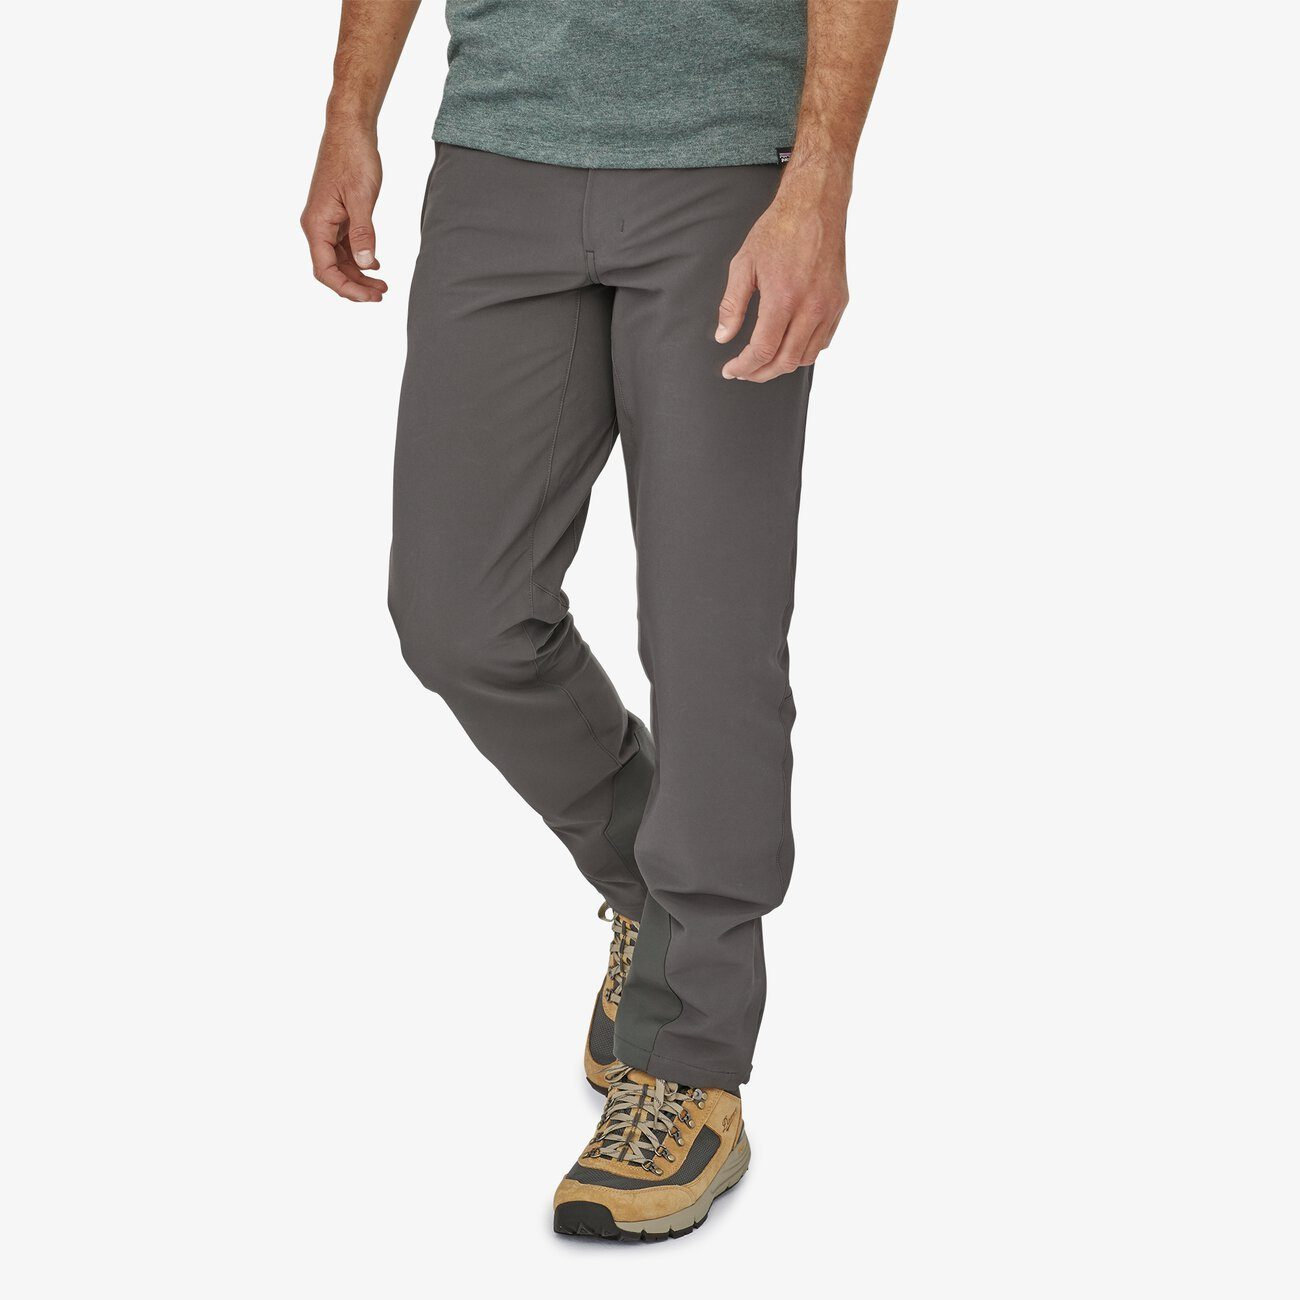 Patagonia - M's Crestview Hiking Pants - Recycled Polyester - Weekendbee - sustainable sportswear